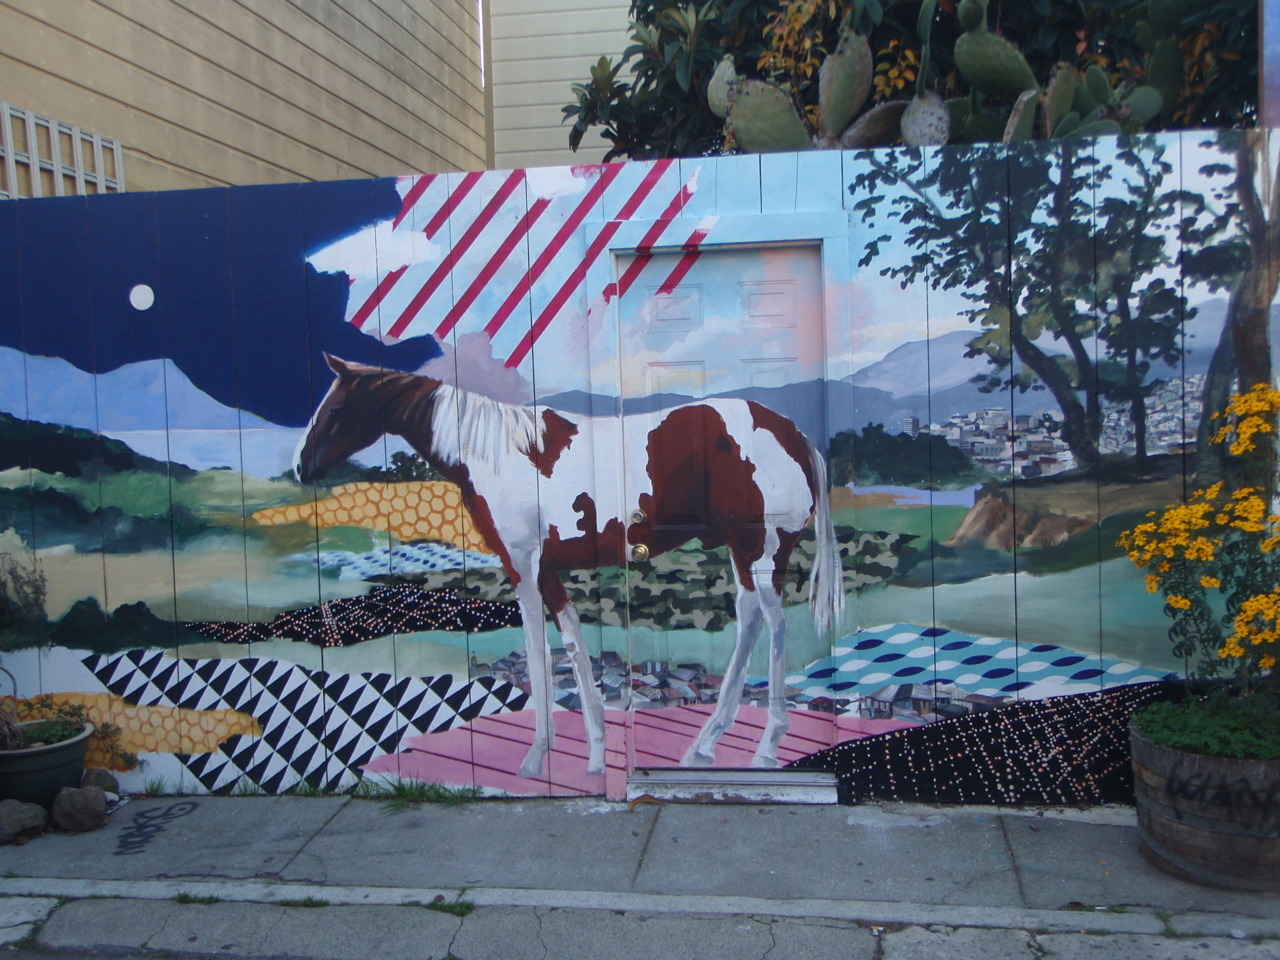 Mural on Balmy St. in the Mission District.